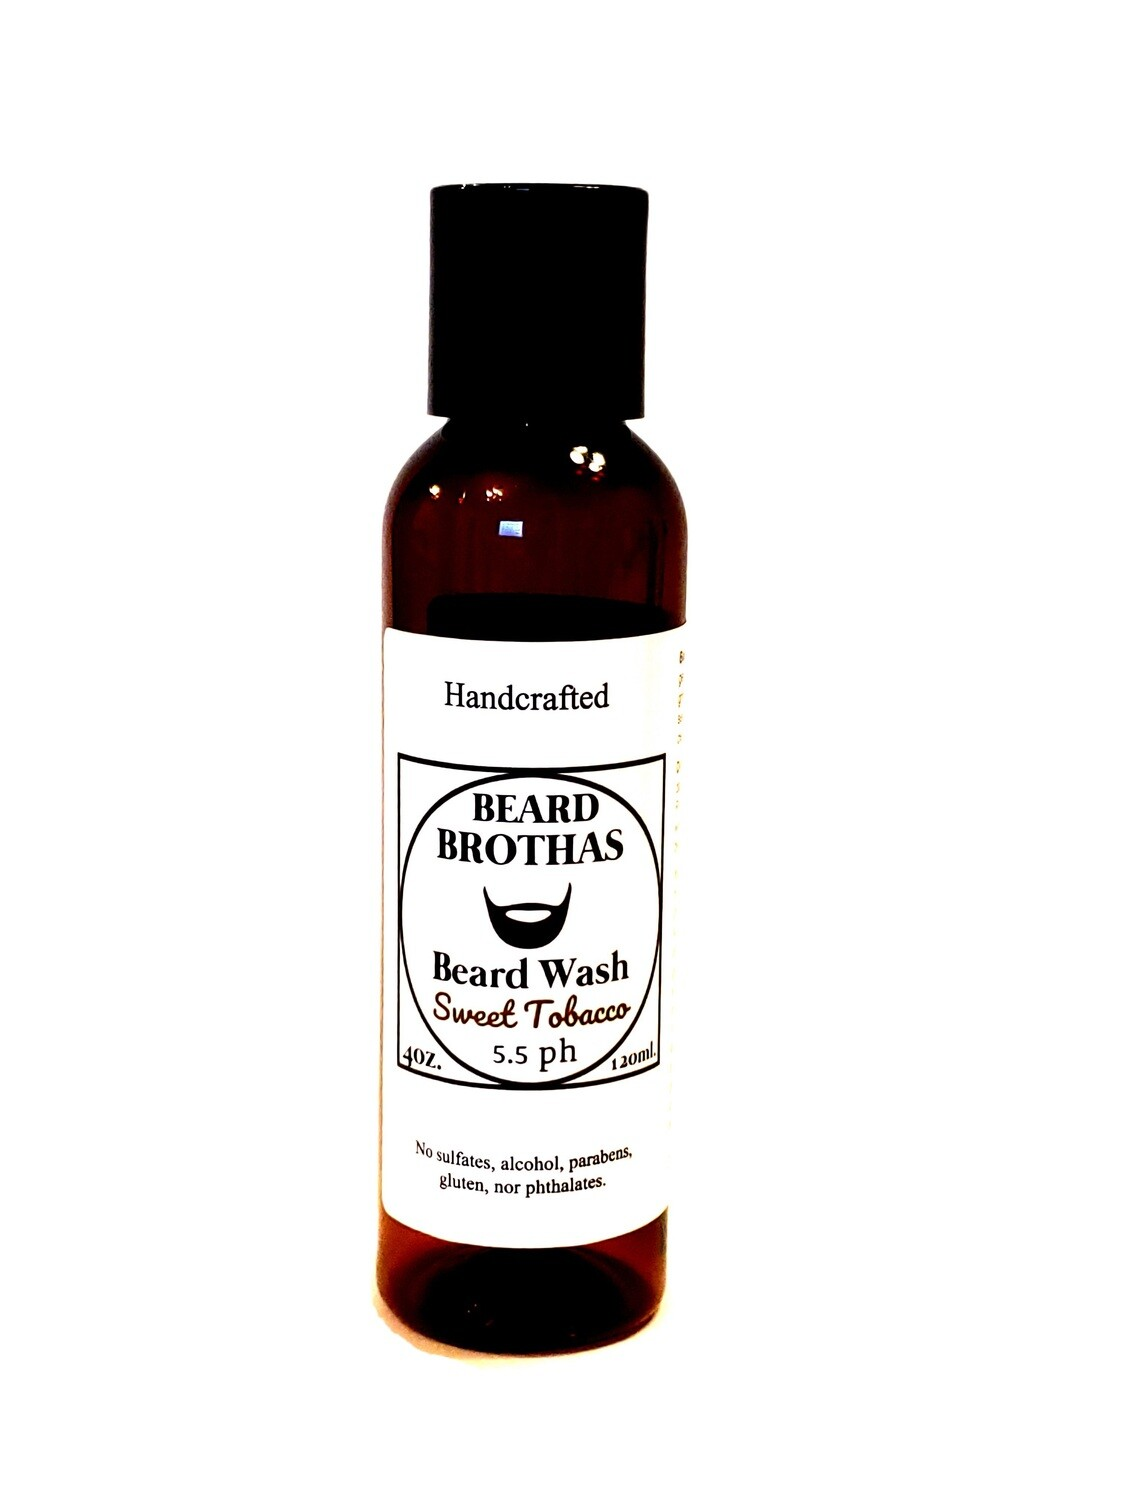 Beard Brothas Beard Wash. Sulfate Free. Sweet Tobacco Scent